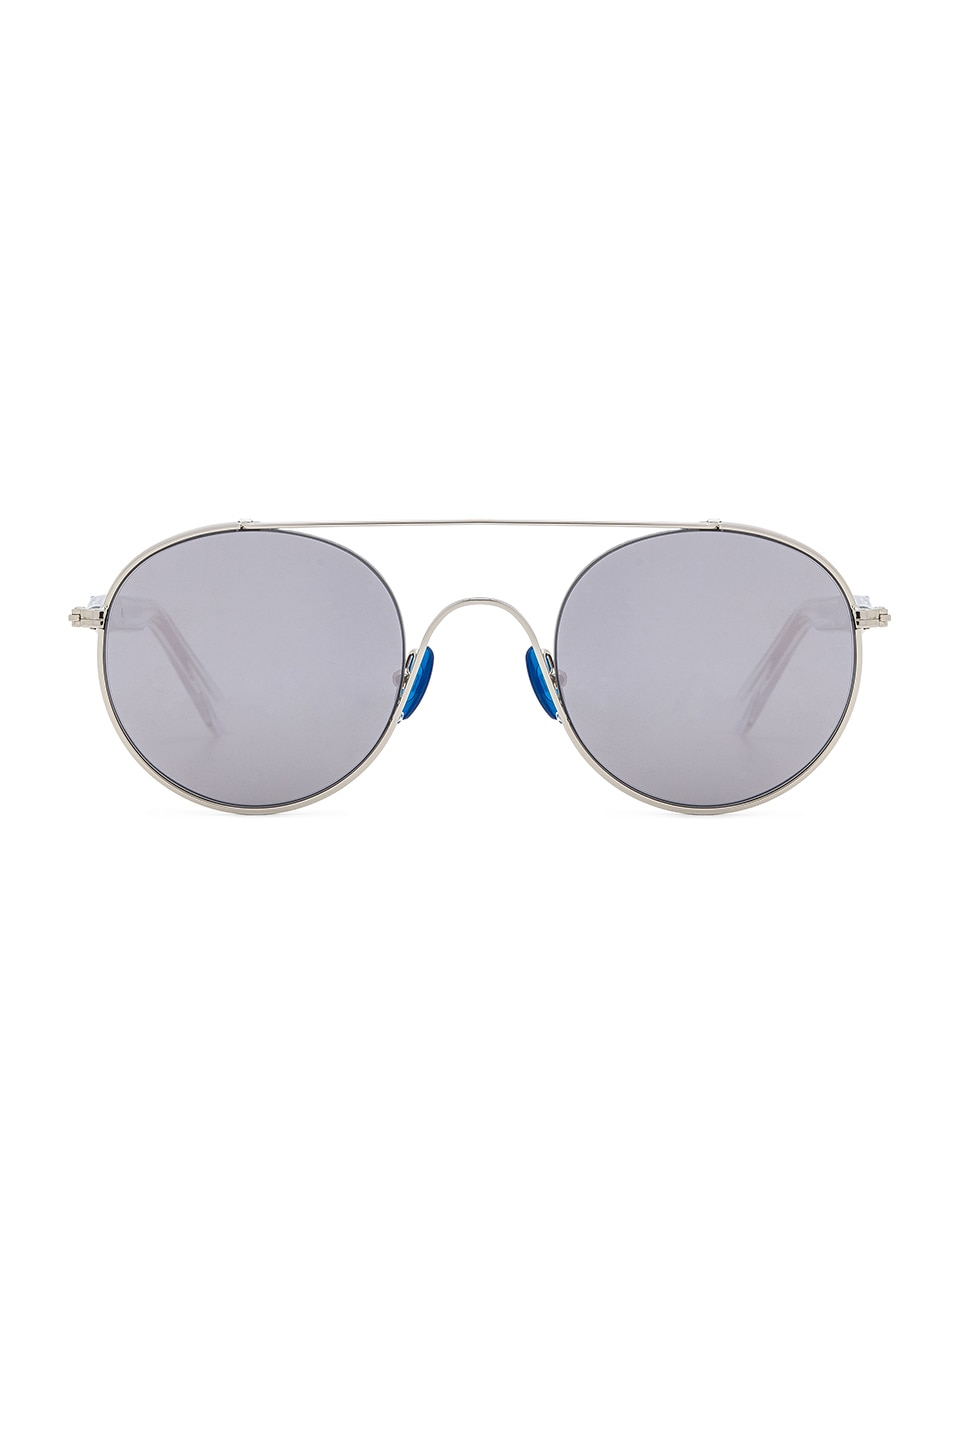 Cellophane Disco Sunglasses by Westward Leaning